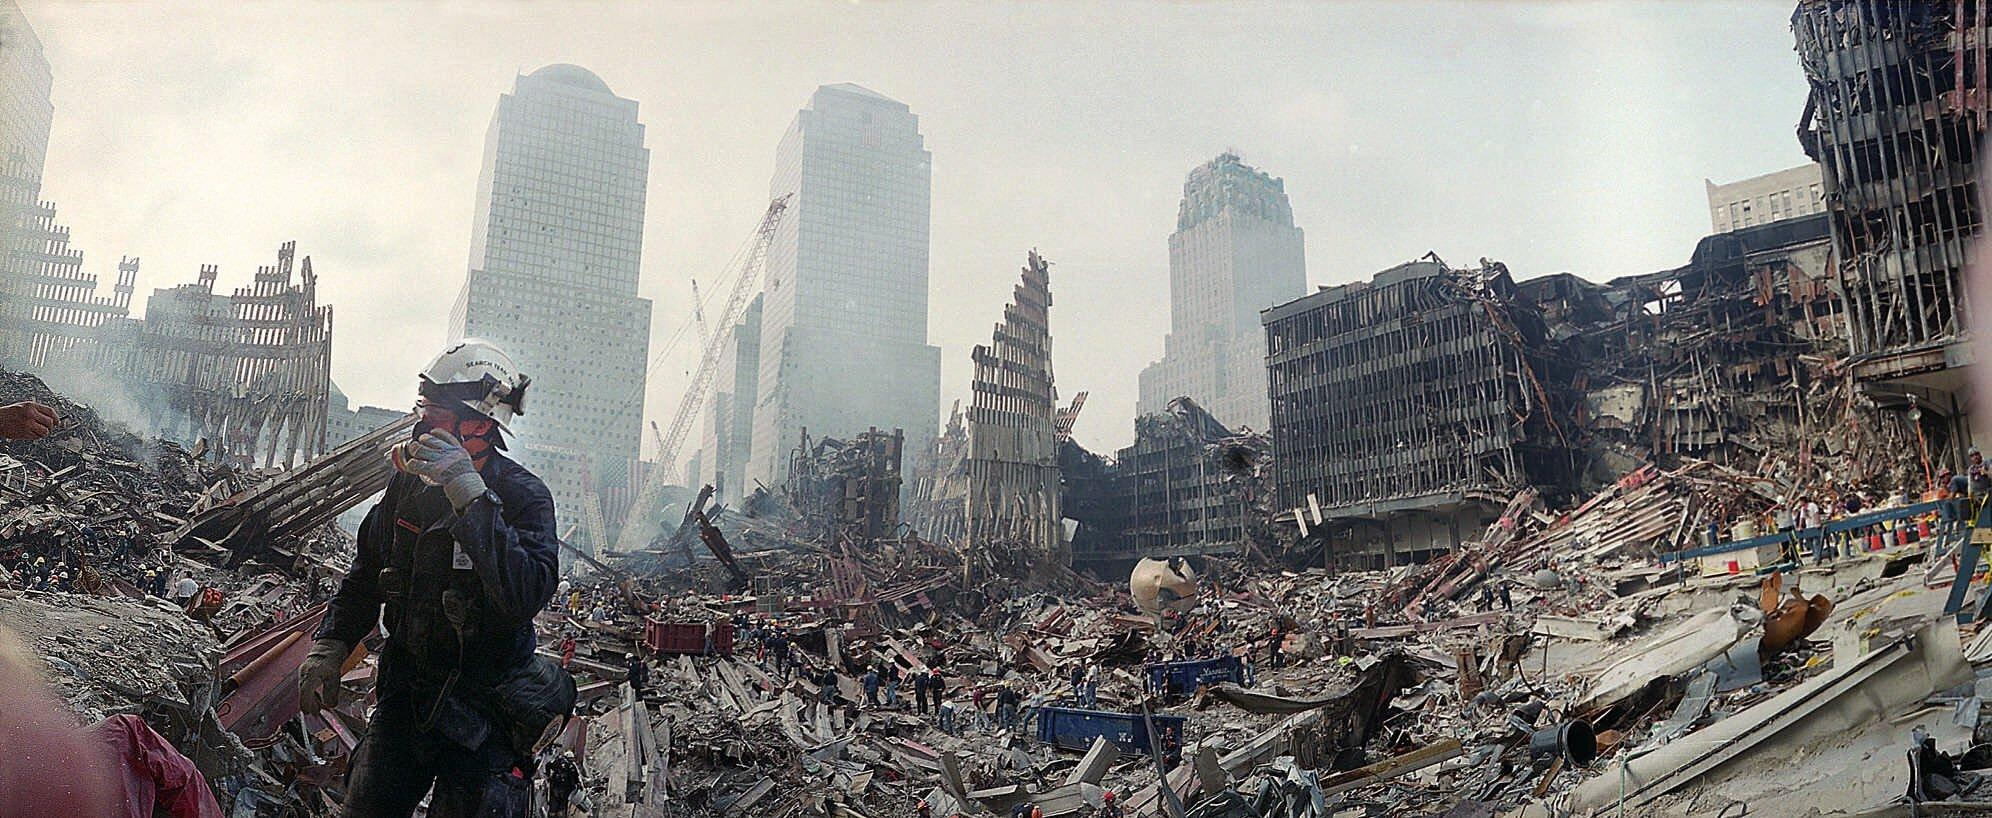 Rescue workers continue their efforts at ground zero on Monday, Sept. 24, 2001.